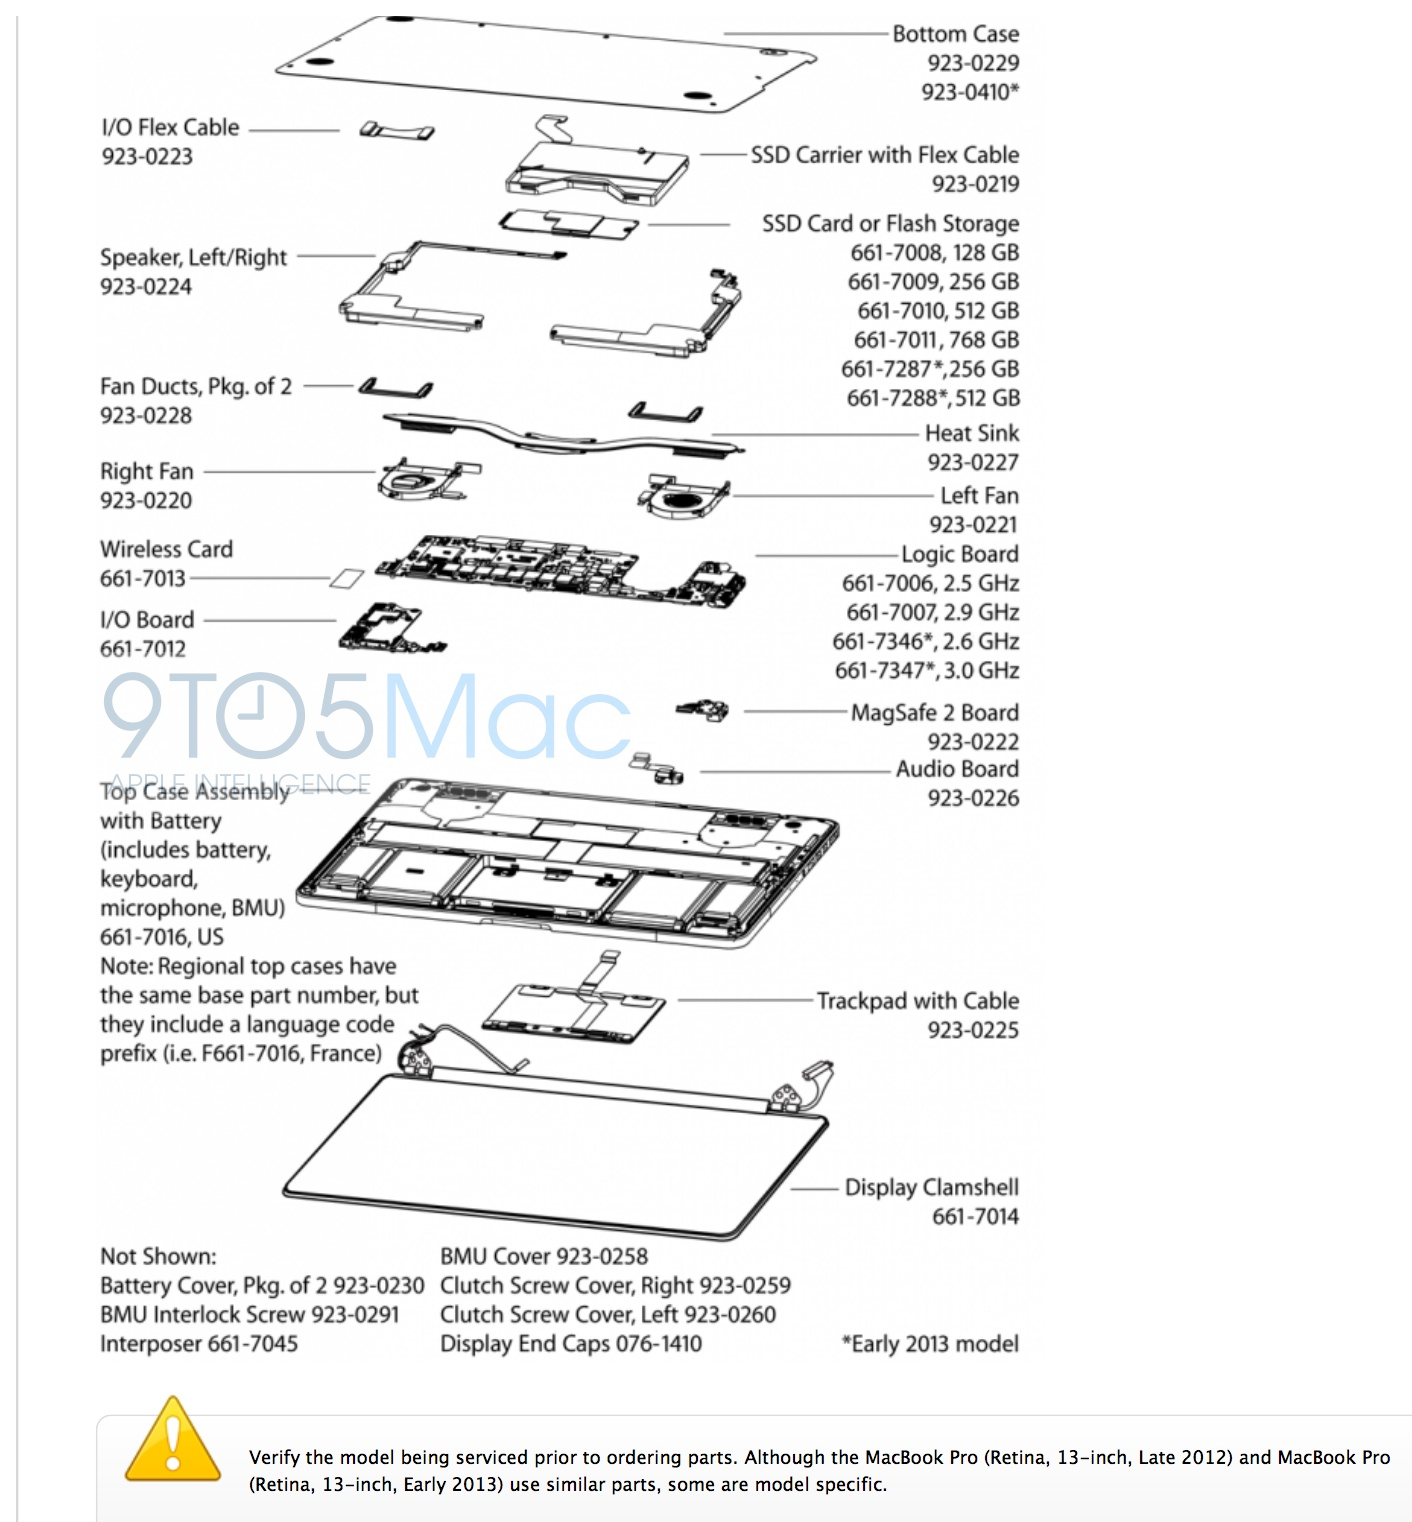 new model early 2013 retina macbook pros use some upgraded rh 9to5mac com macbook pro parts list macbook pro a1286 parts list